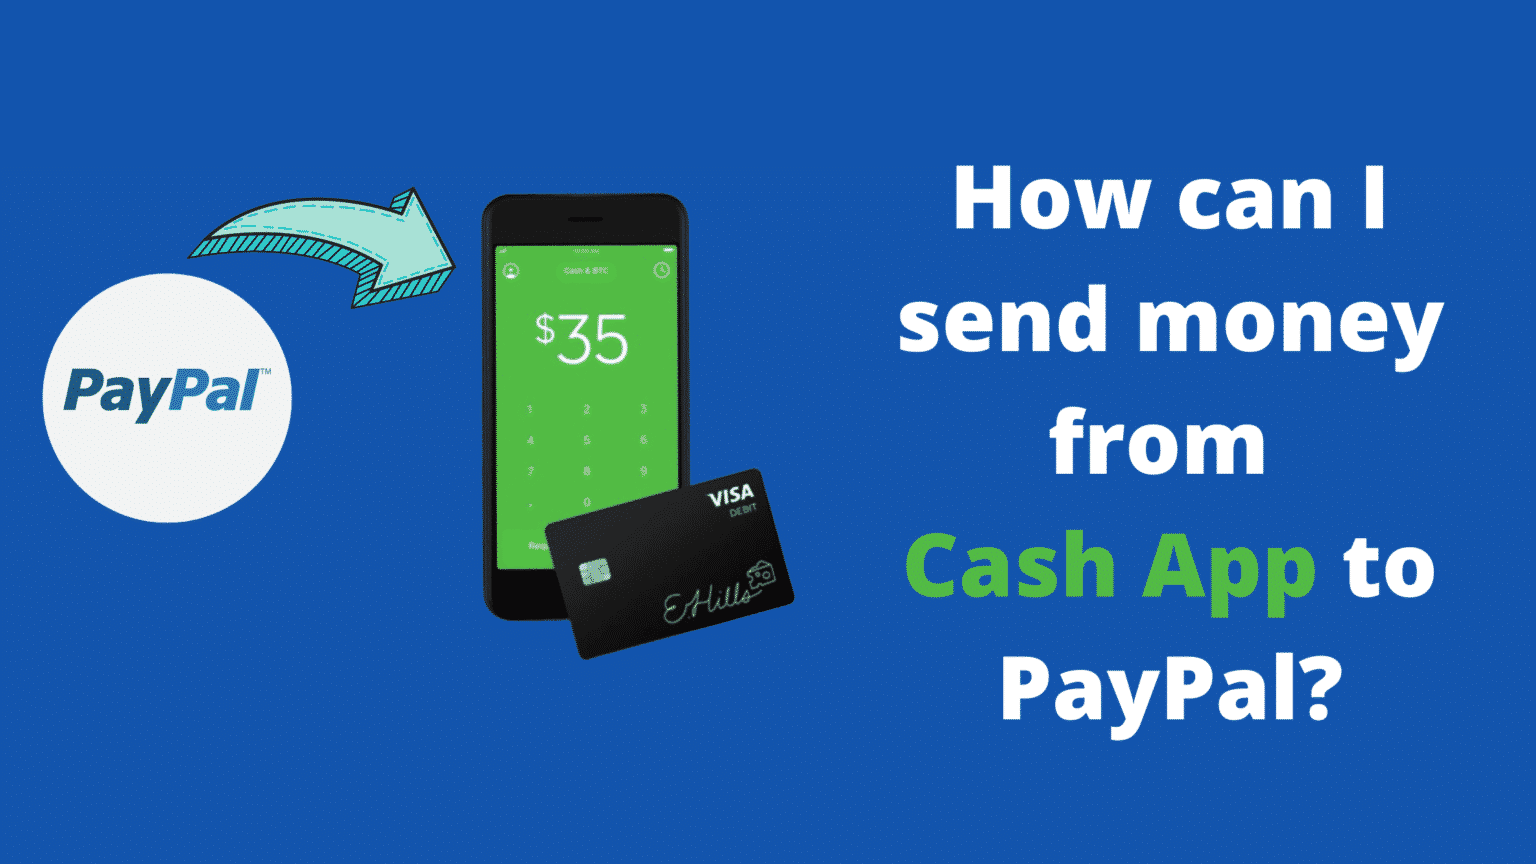 Send Money From Cash App To PayPal